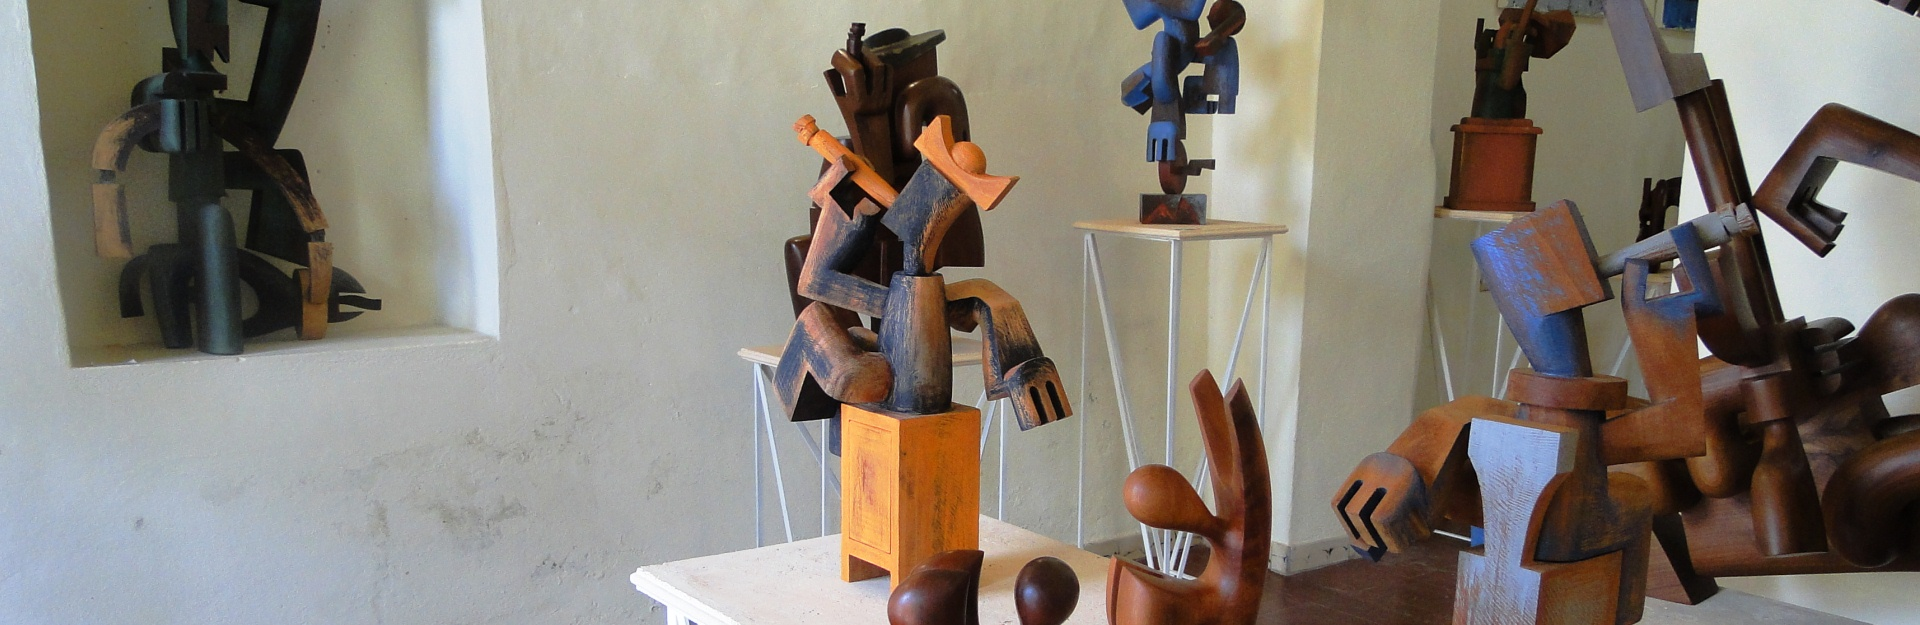 Wood-carved sculptures in Camagüey, Cuba